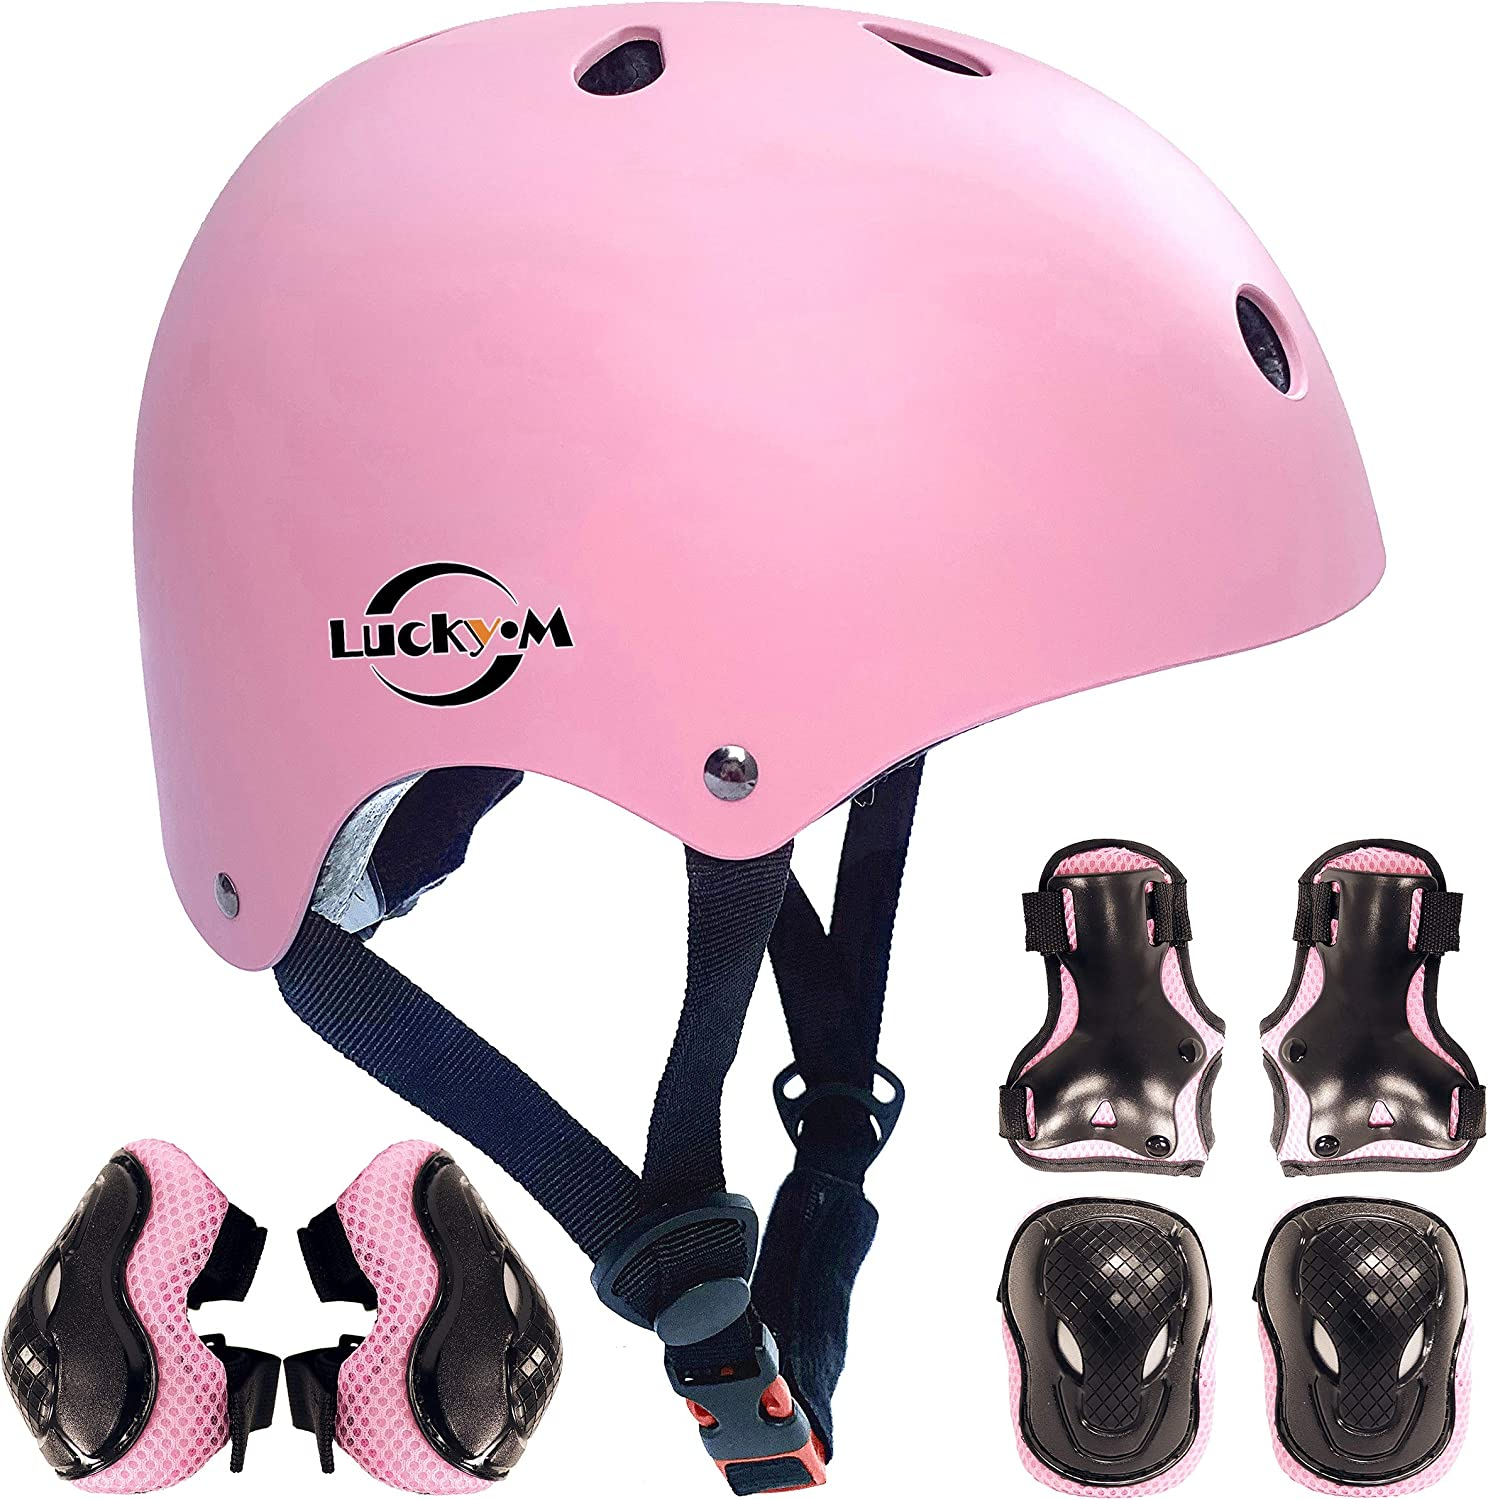 Kids Toddler Protective Gear and Helmet Sets Kids Helmet and Pads Set[Knee Pads,Wrist Pads and Elbow Pads] for Skateboarding, Skating, Scooter, Cycling : Sports & Outdoors